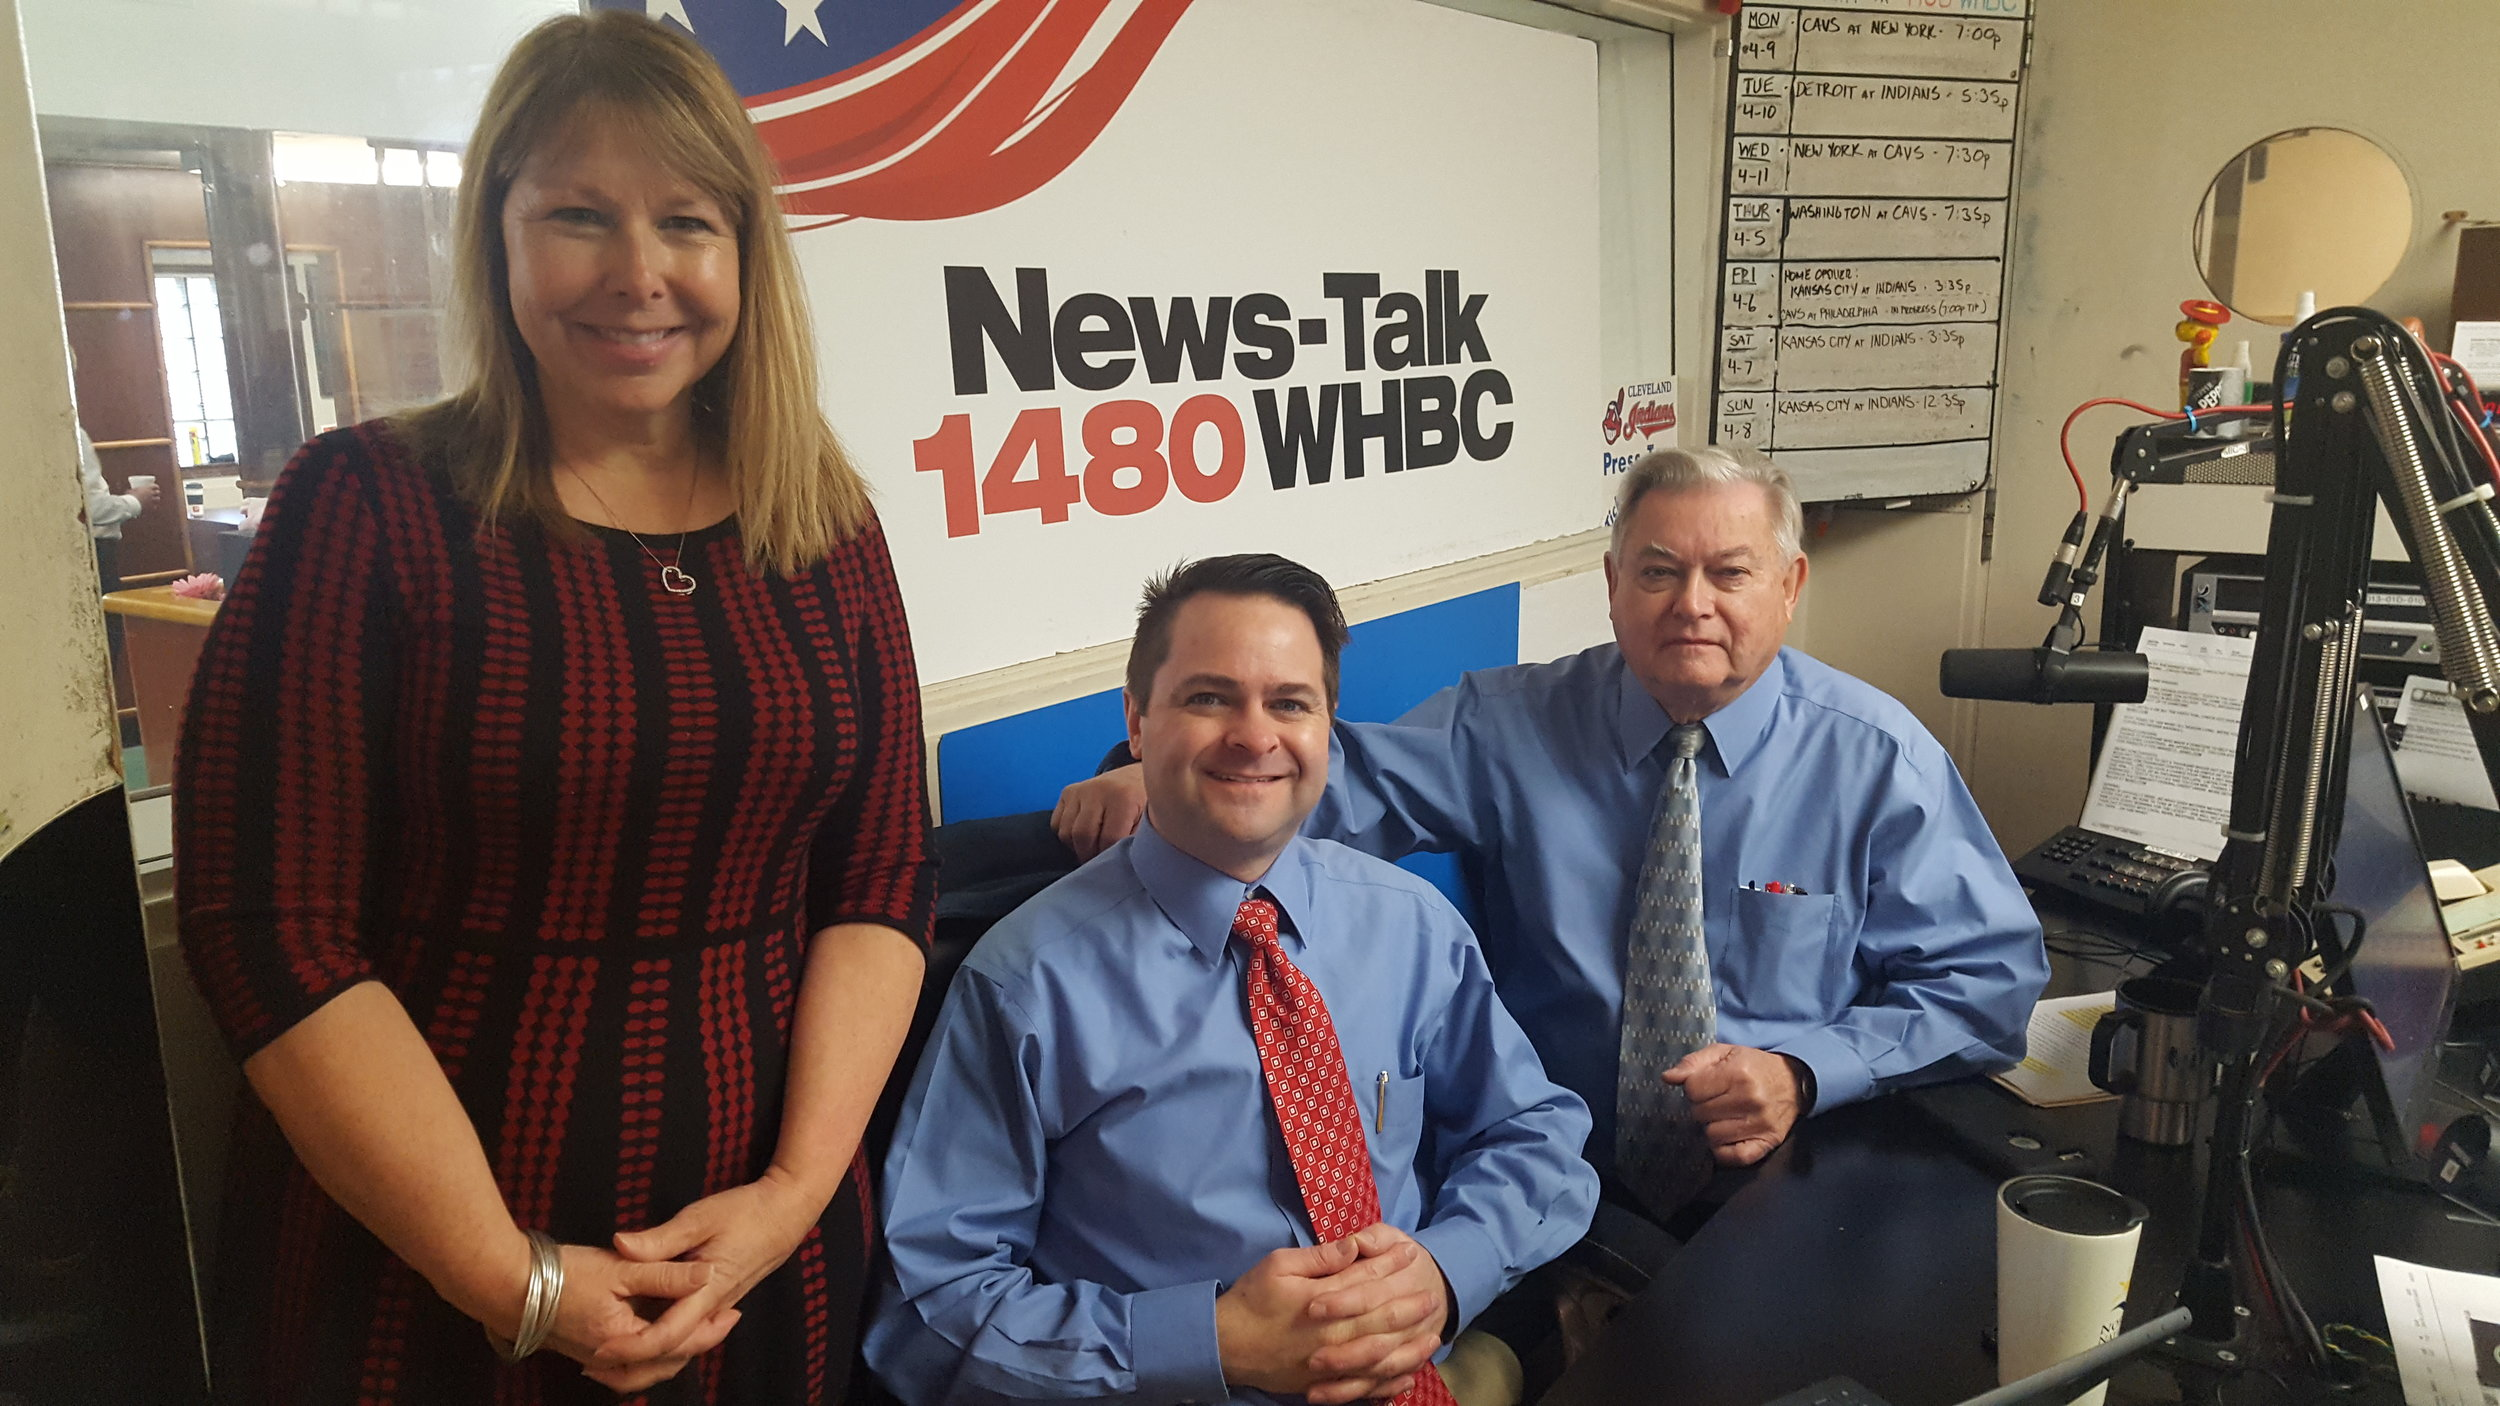 L-R: Valerie Stutler, American Heart Association social events director discusses Move More month and the 2018 Heart Ball with hosts and pharmacists, Brad White and Paul White.